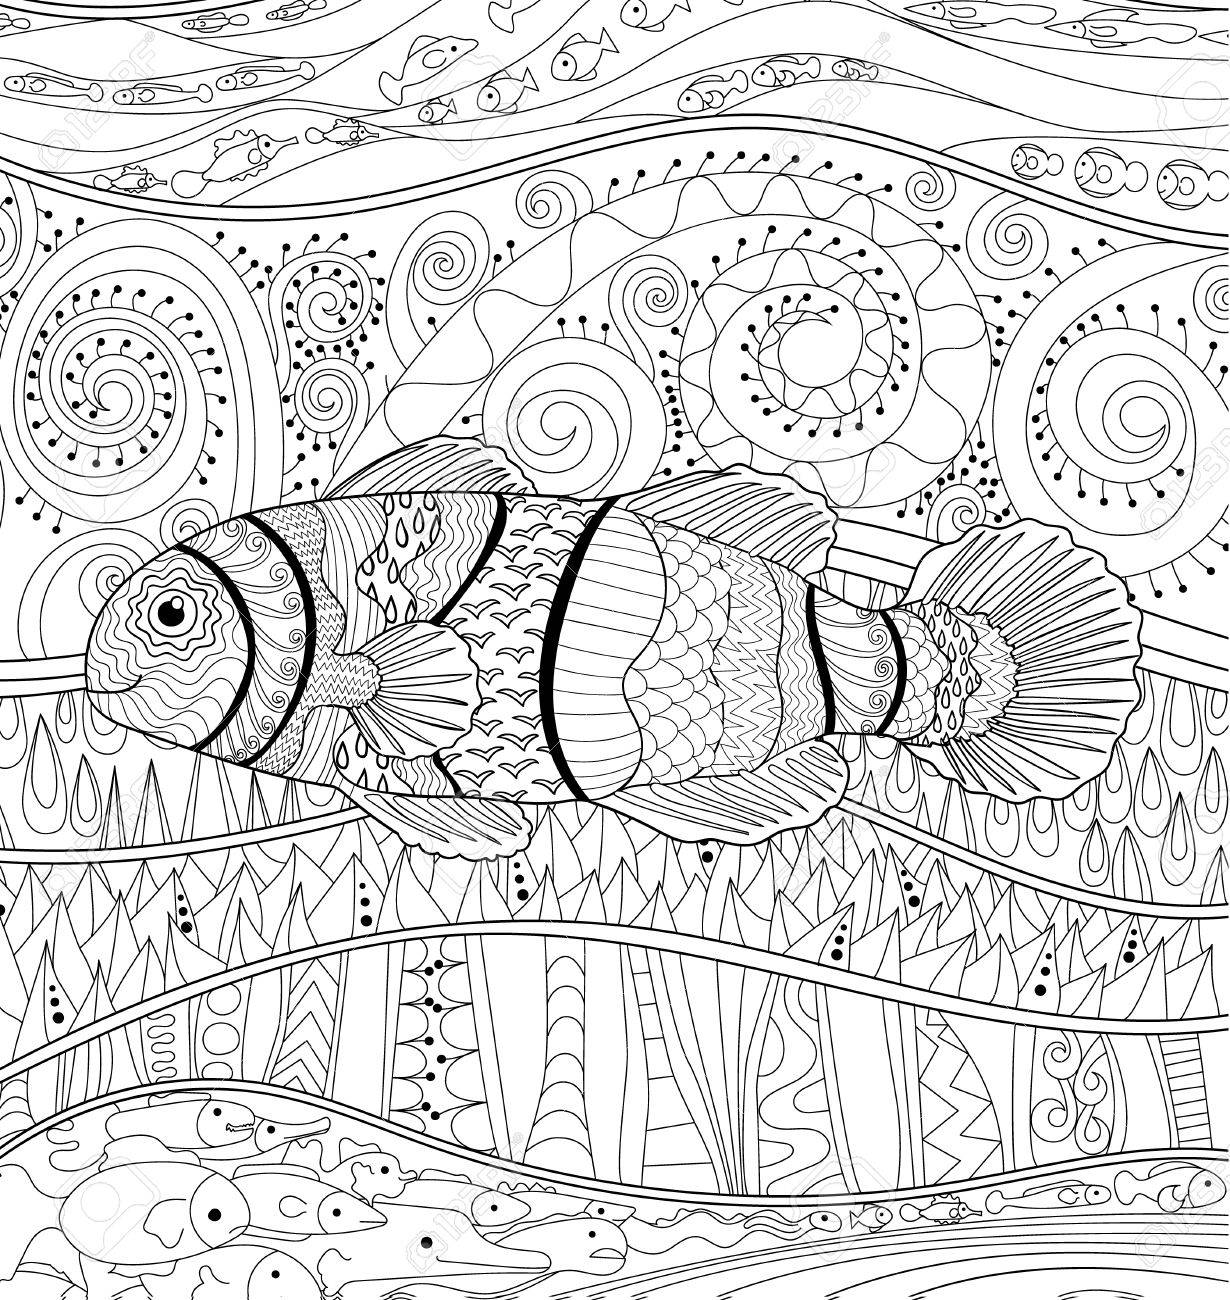 Anti stress coloring therapy - Adult Antistress Coloring Page Black White Sea Animal For Art